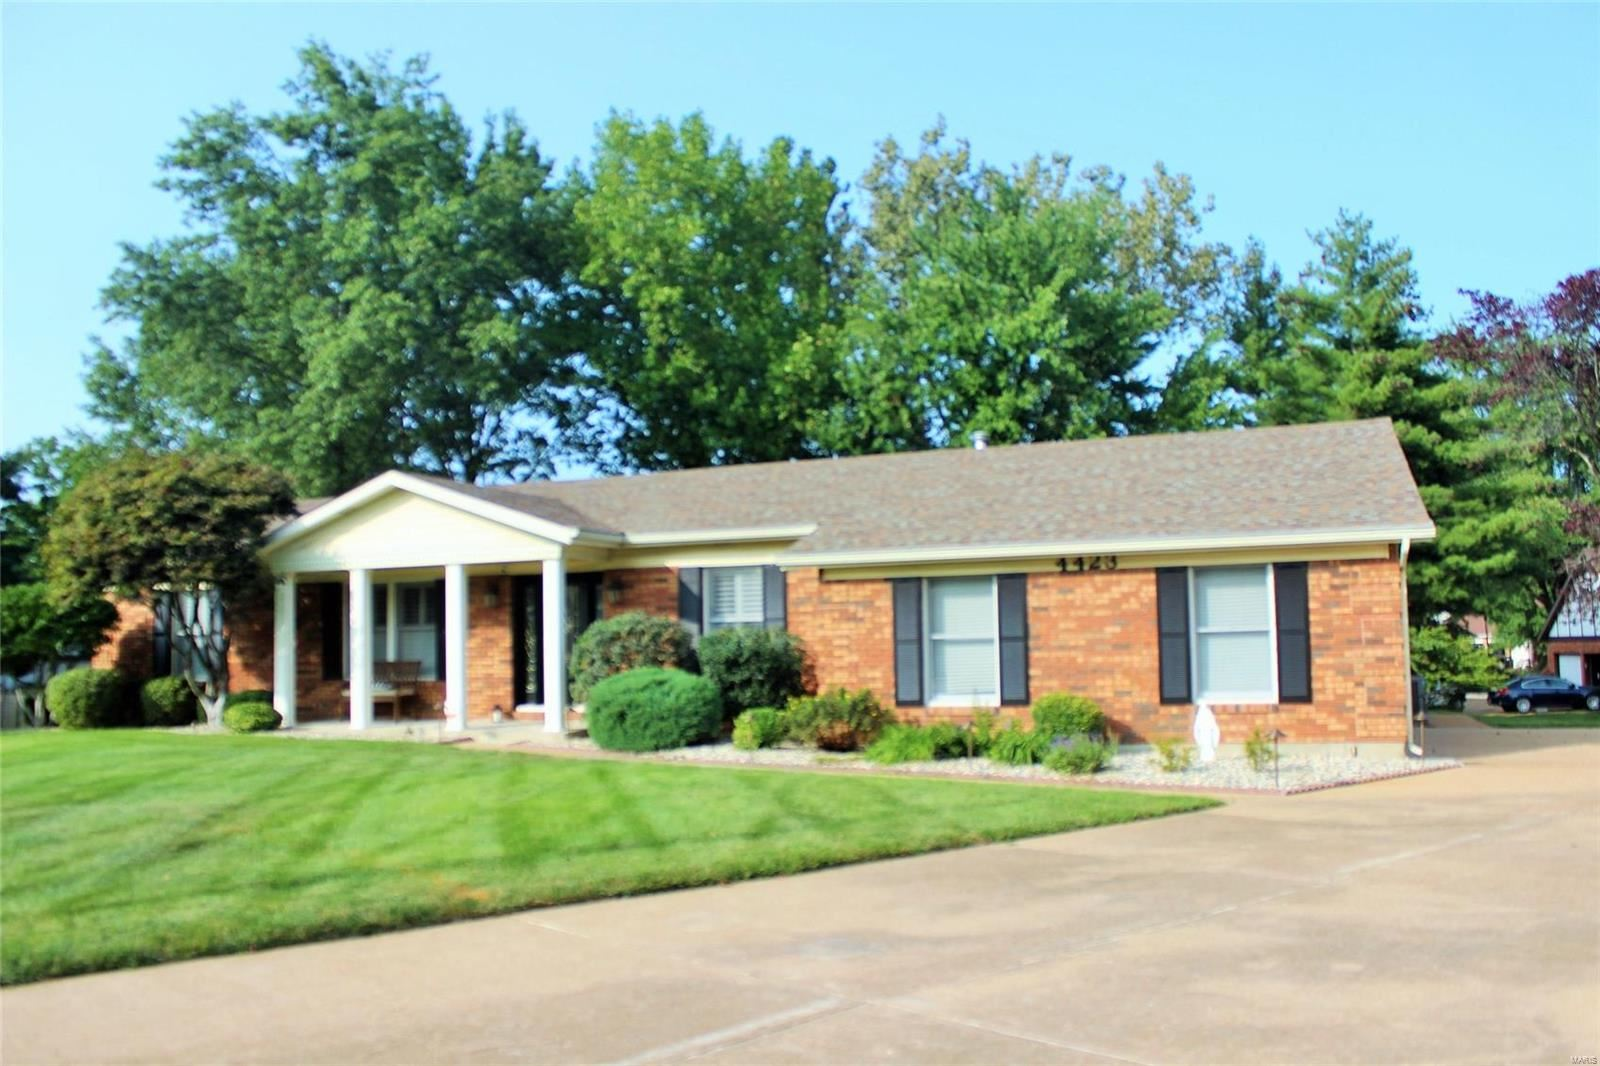 4423 Carriage Trace Drive, Concord, MO 63128 - MLS#: 20067831